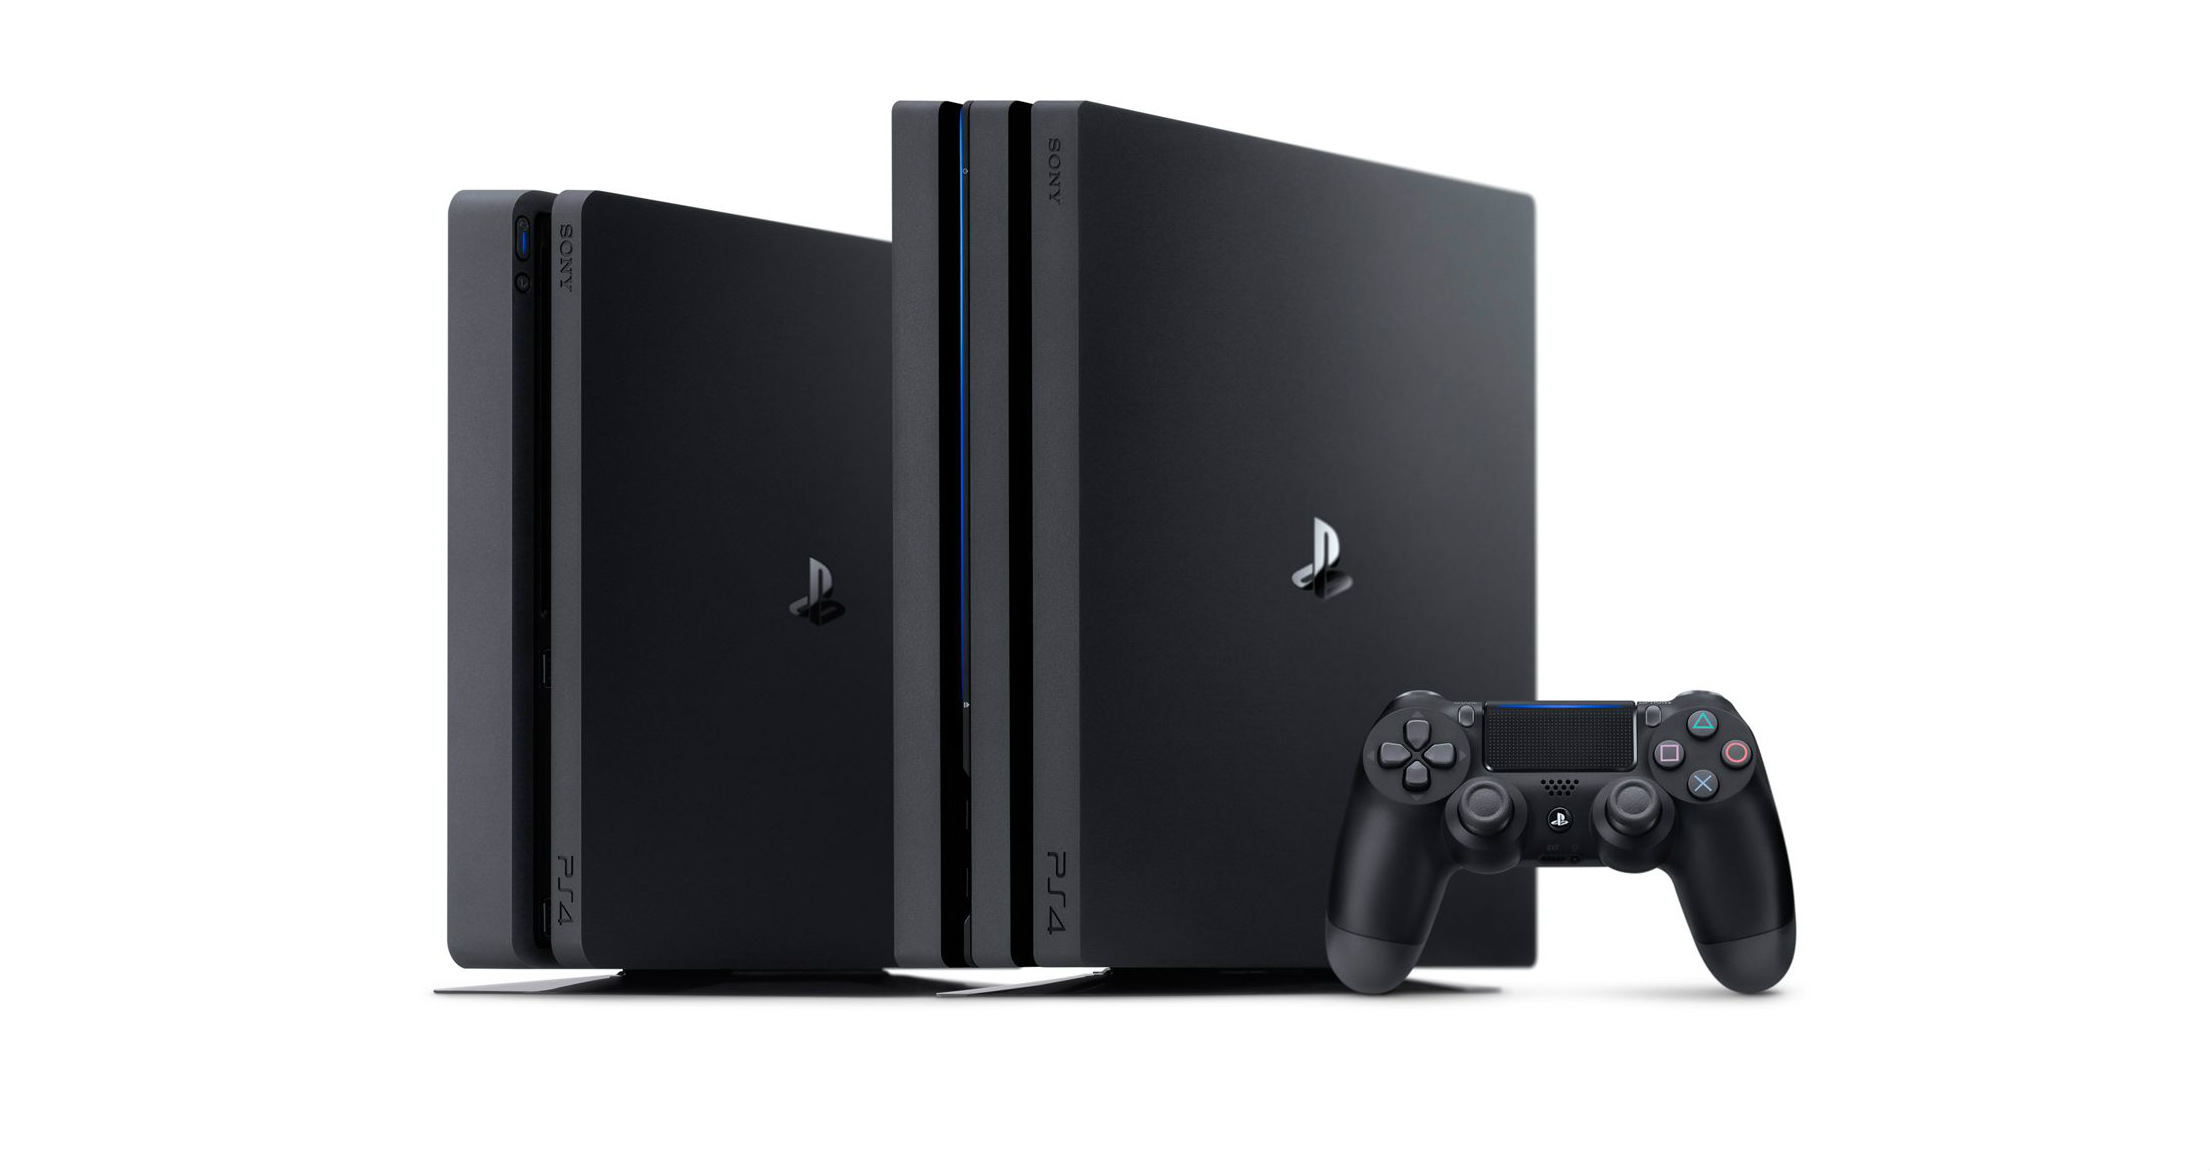 PS4 Owners Can Sign Up For System Update 5.50 Beta